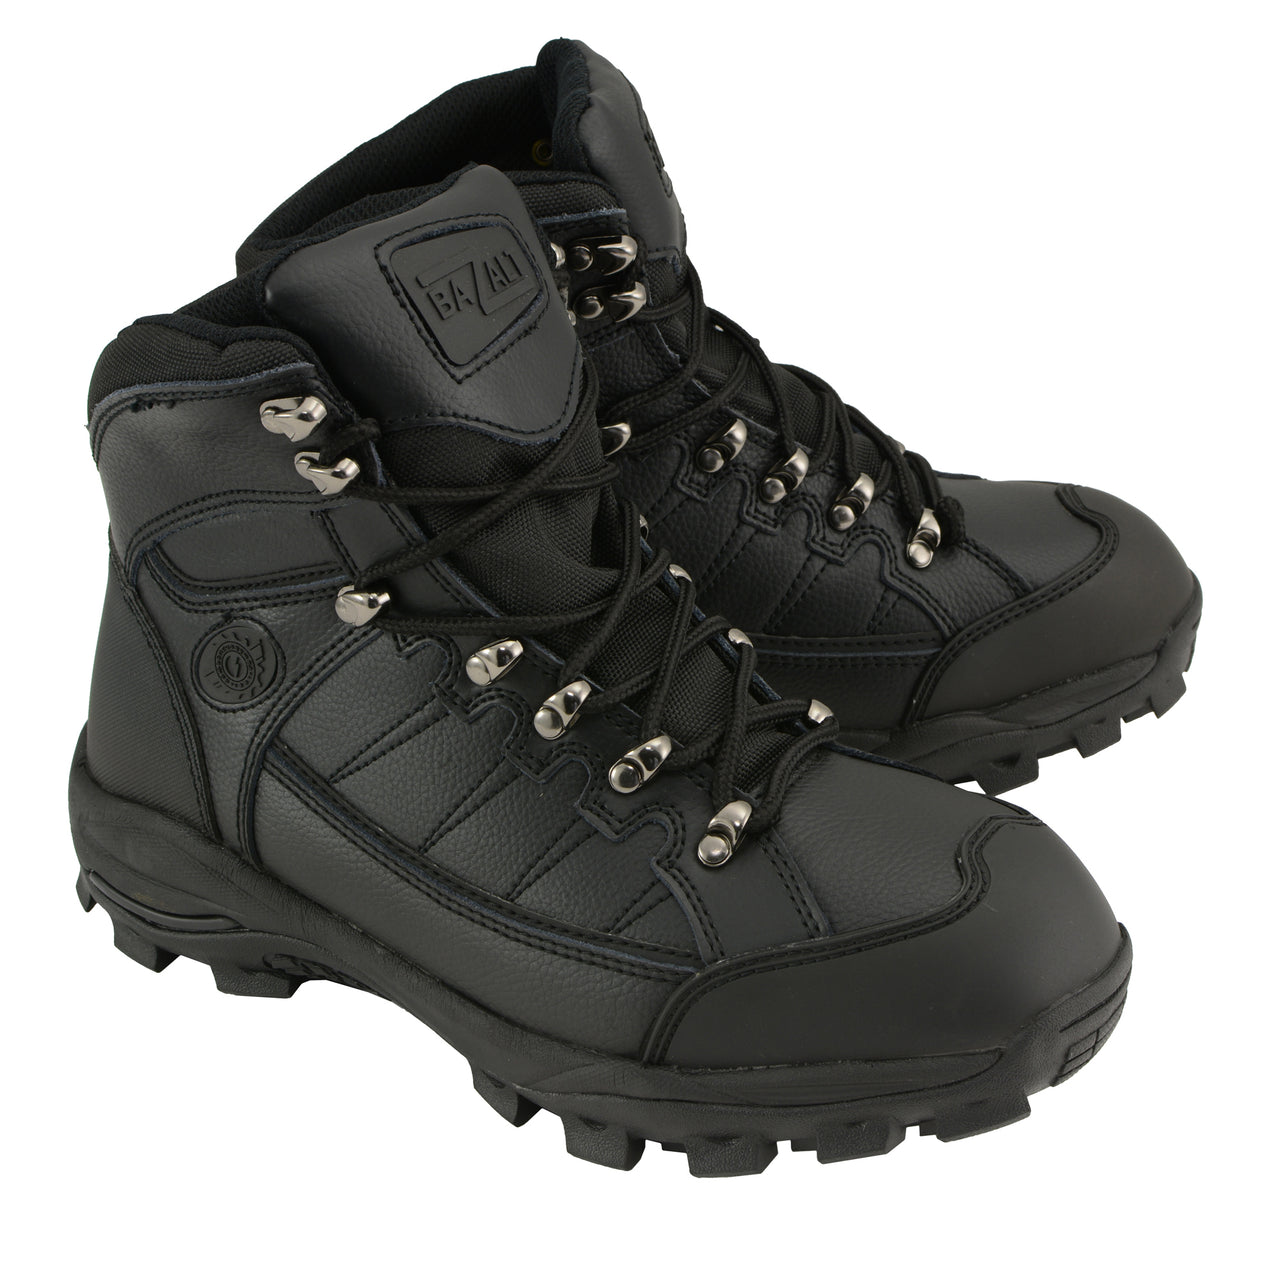 BAZALT-MBM9129ST-Men's Black Water & Frost Proof Leather Boots W/ Composite Toe-BLK-7 - HighwayLeather